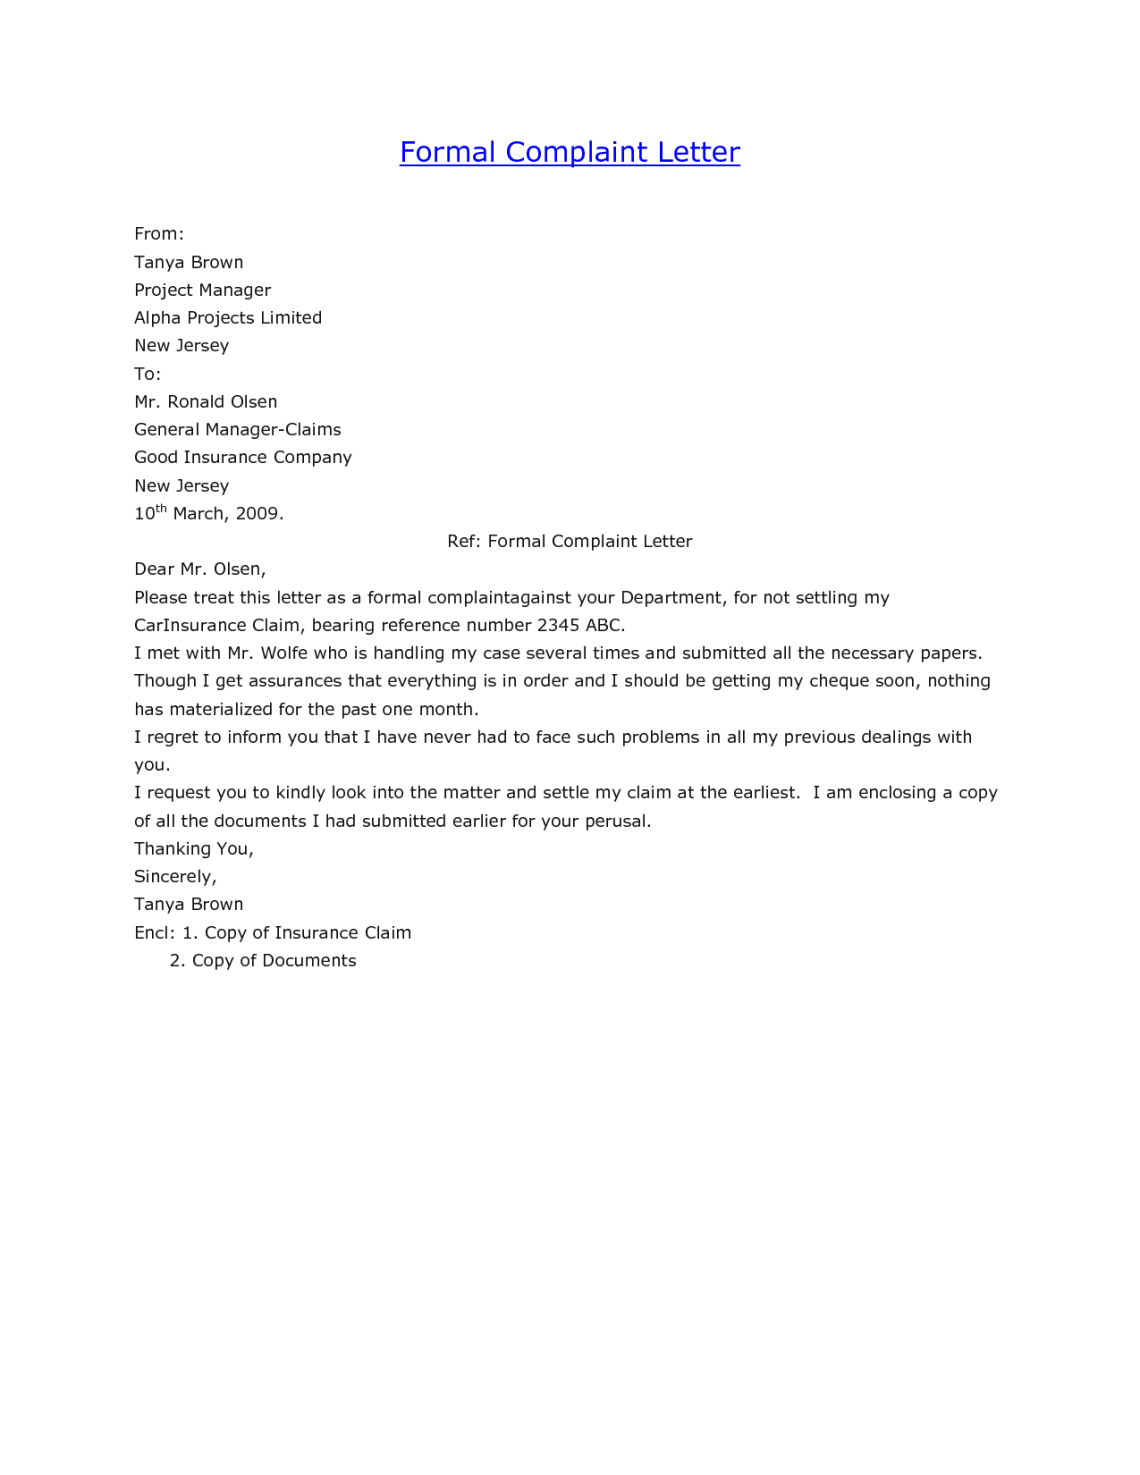 Medical Negligence Complaint Letter Template - formal Business Letter Plaint Template Resize 2 C Perfect